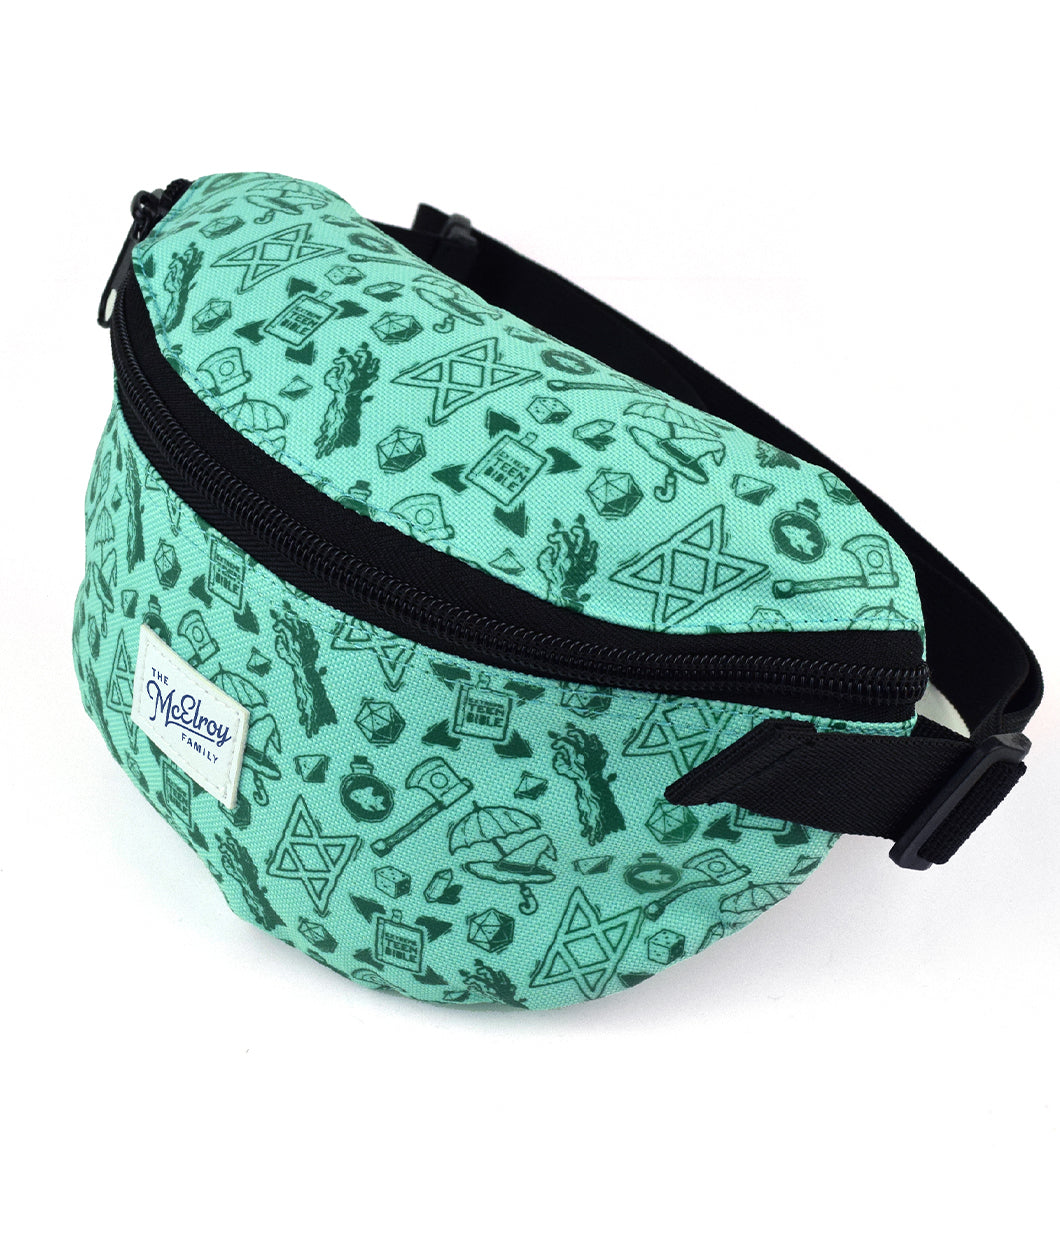 The Adventure Zone Fanny Pack